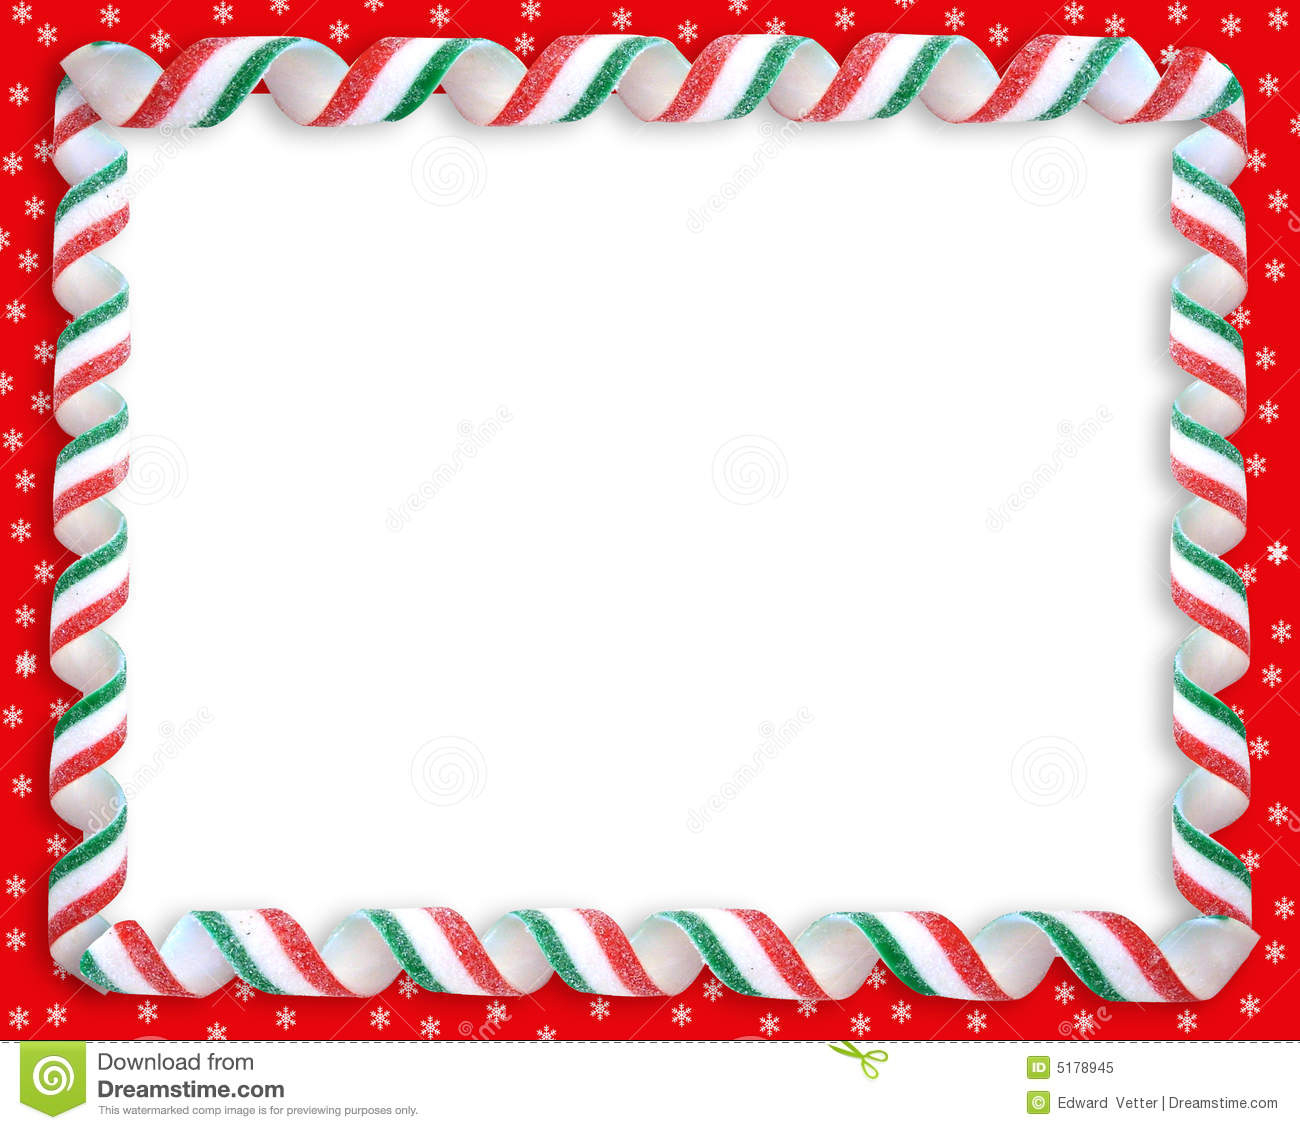 Christmas Frames And Borders Photoshop Clipart. A Christmas Border - Free Printable Christmas Frames And Borders